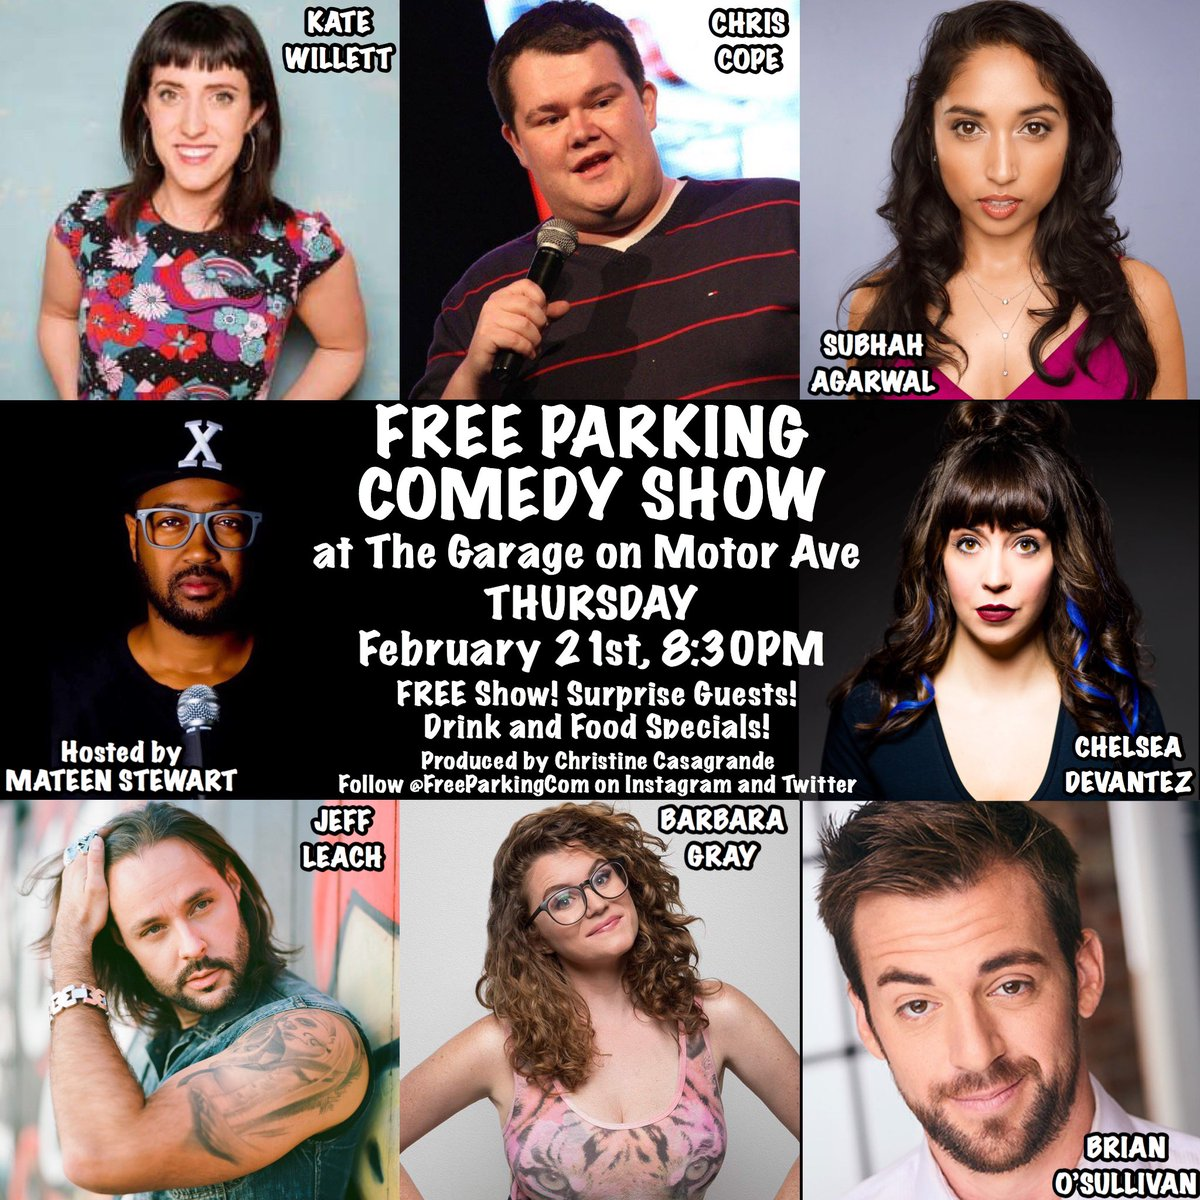 TONIGHT!! Get to the @GarageMotorAve for #FreeParkingComedy with @katewillett @ChrisCopeComedy @Subhah @chelseadevantez @jeffleach @BabsGray @bocomedy hosted by @MateenStewart and produced by @XtineBigHouse!!